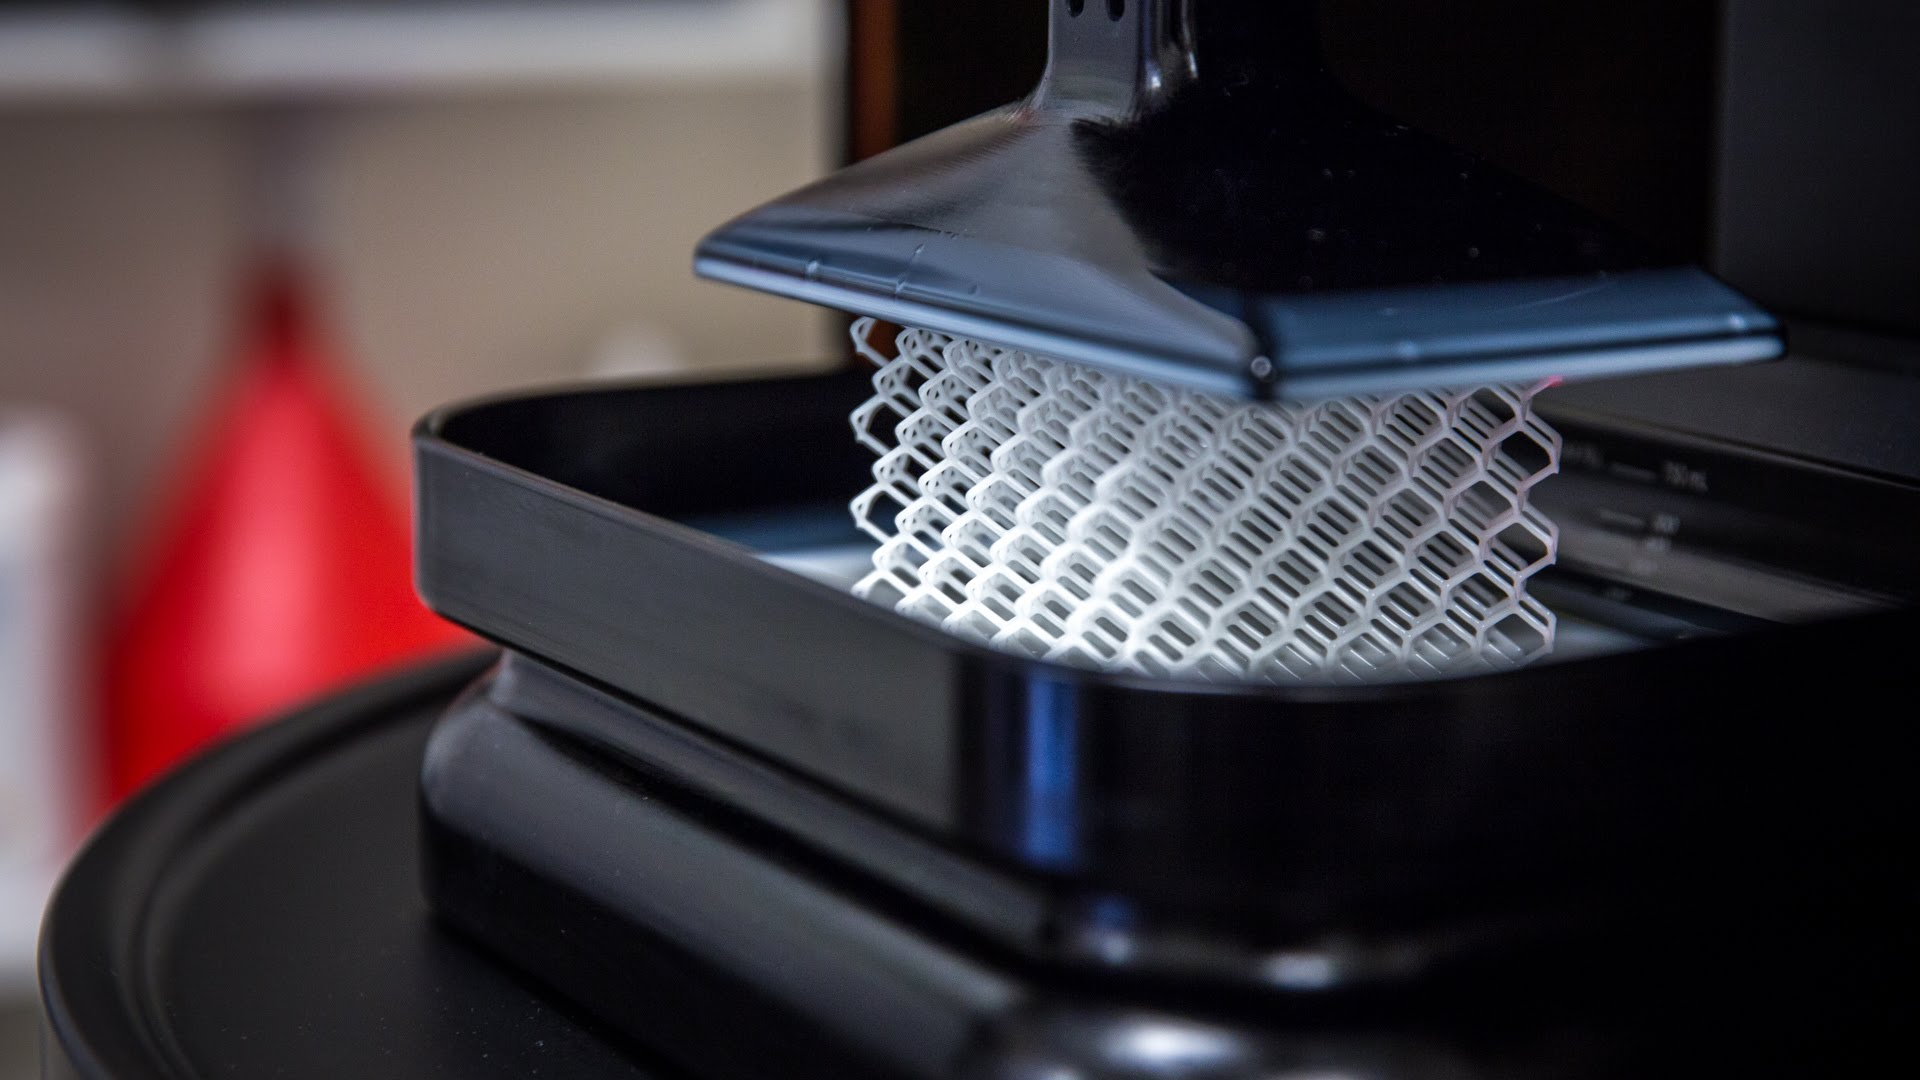 5 Unique Images Created by 3D Printing